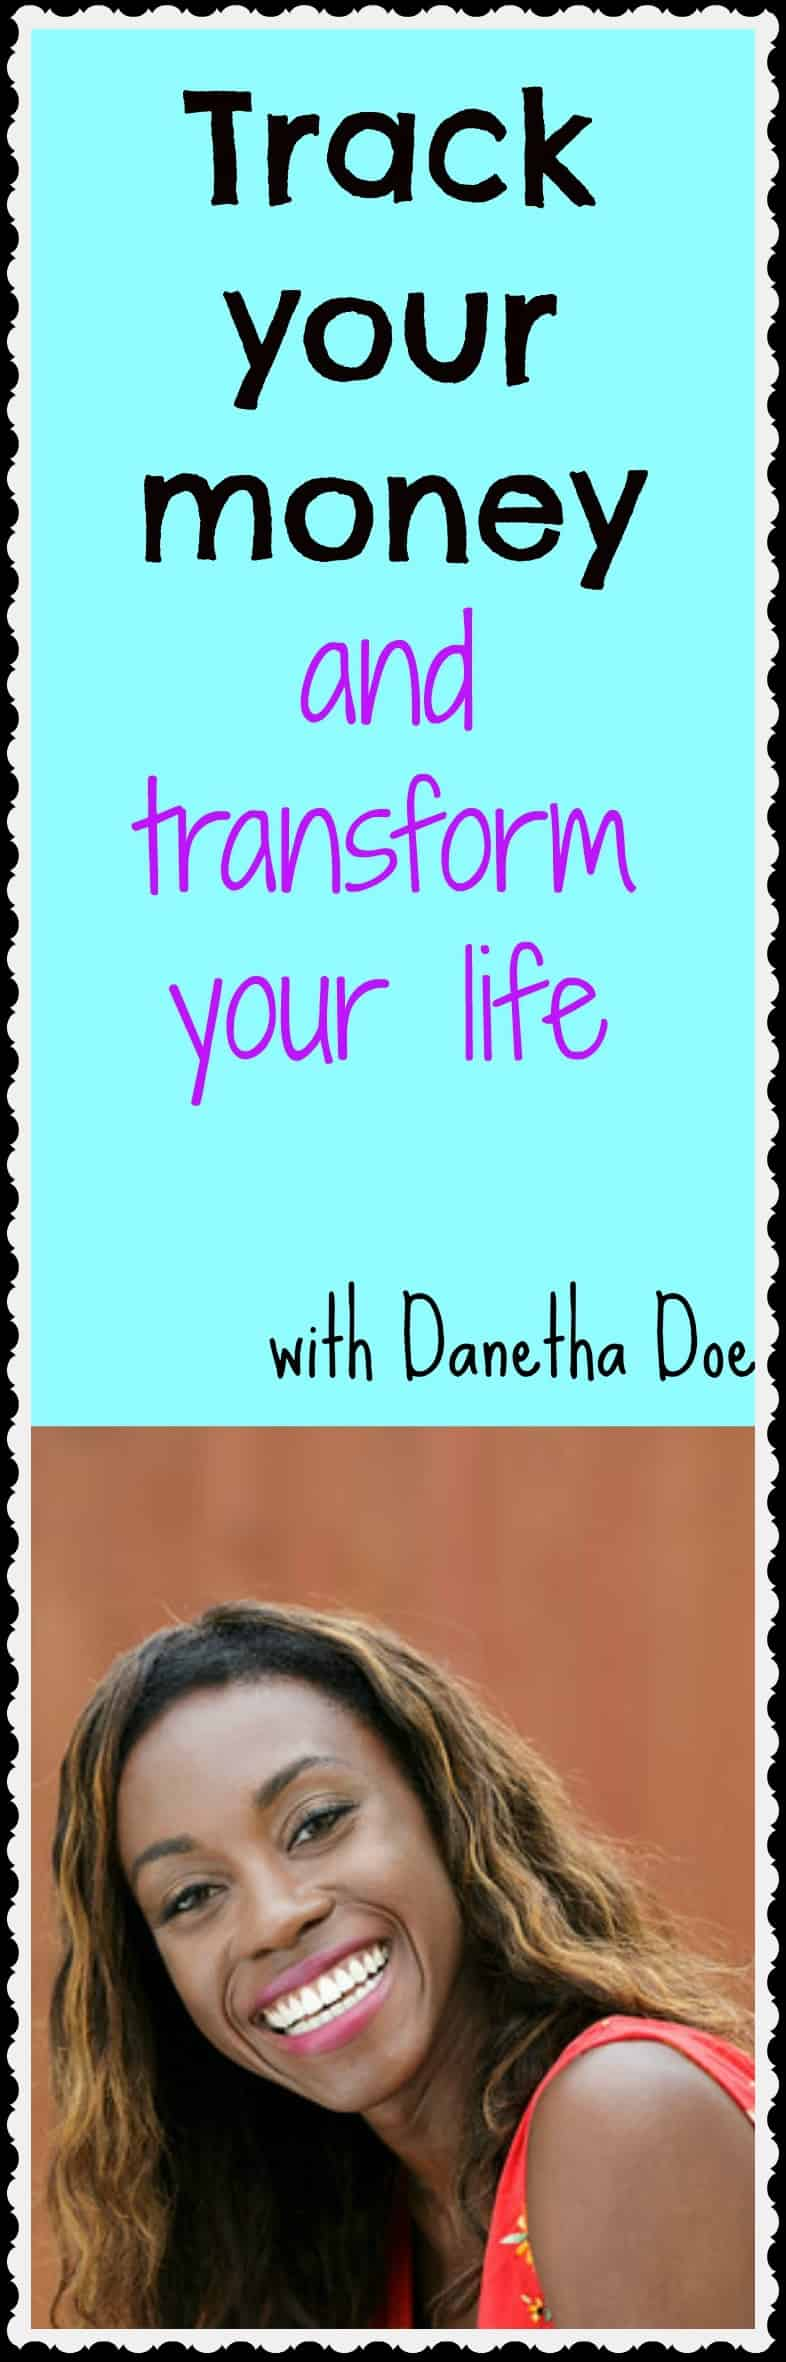 Track your money and transform your life – with Danetha Doe